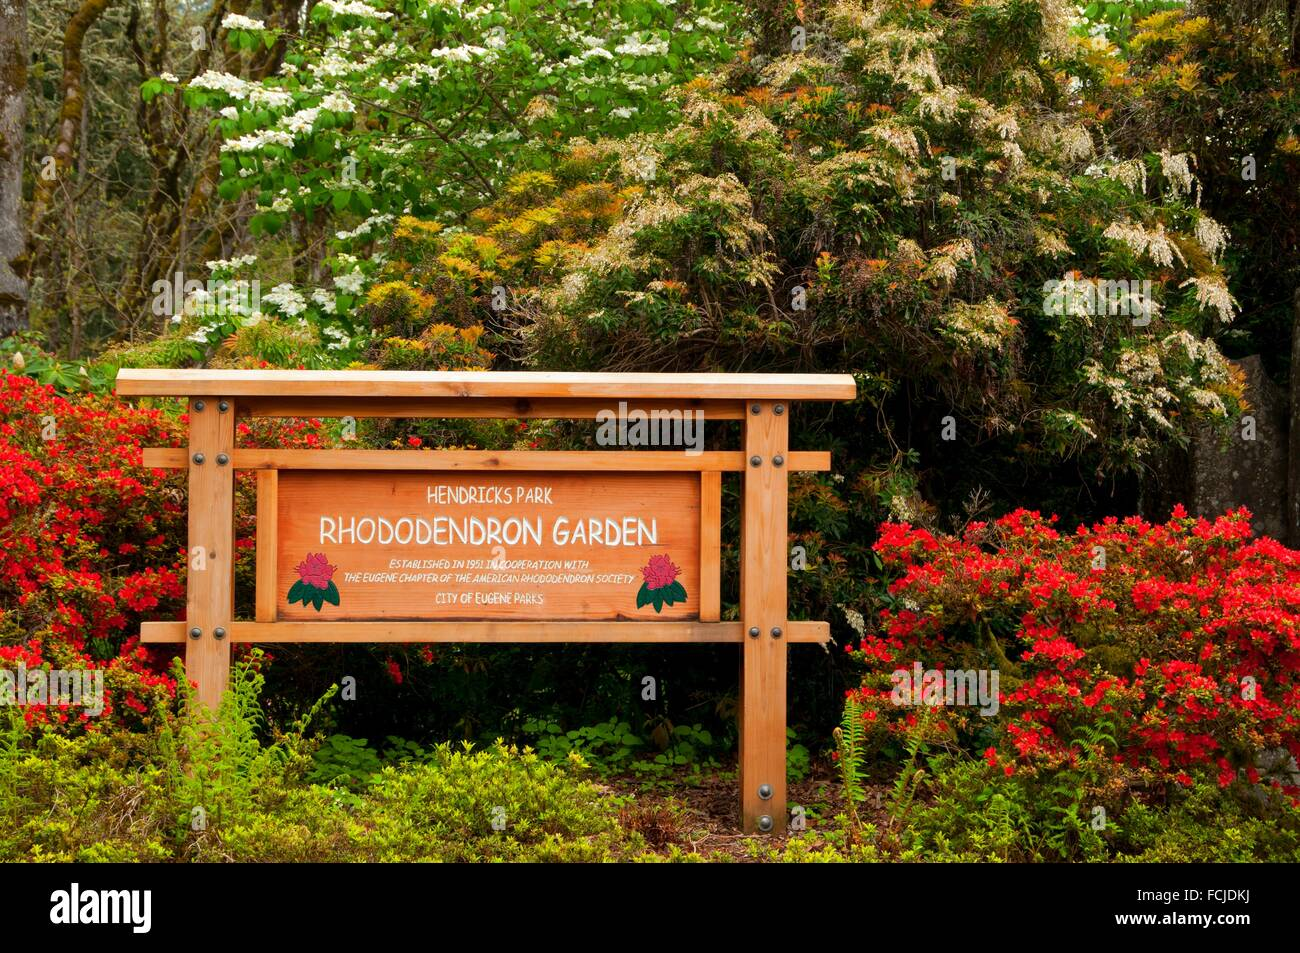 Bloom Sign Stock Photos & Bloom Sign Stock Images - Alamy